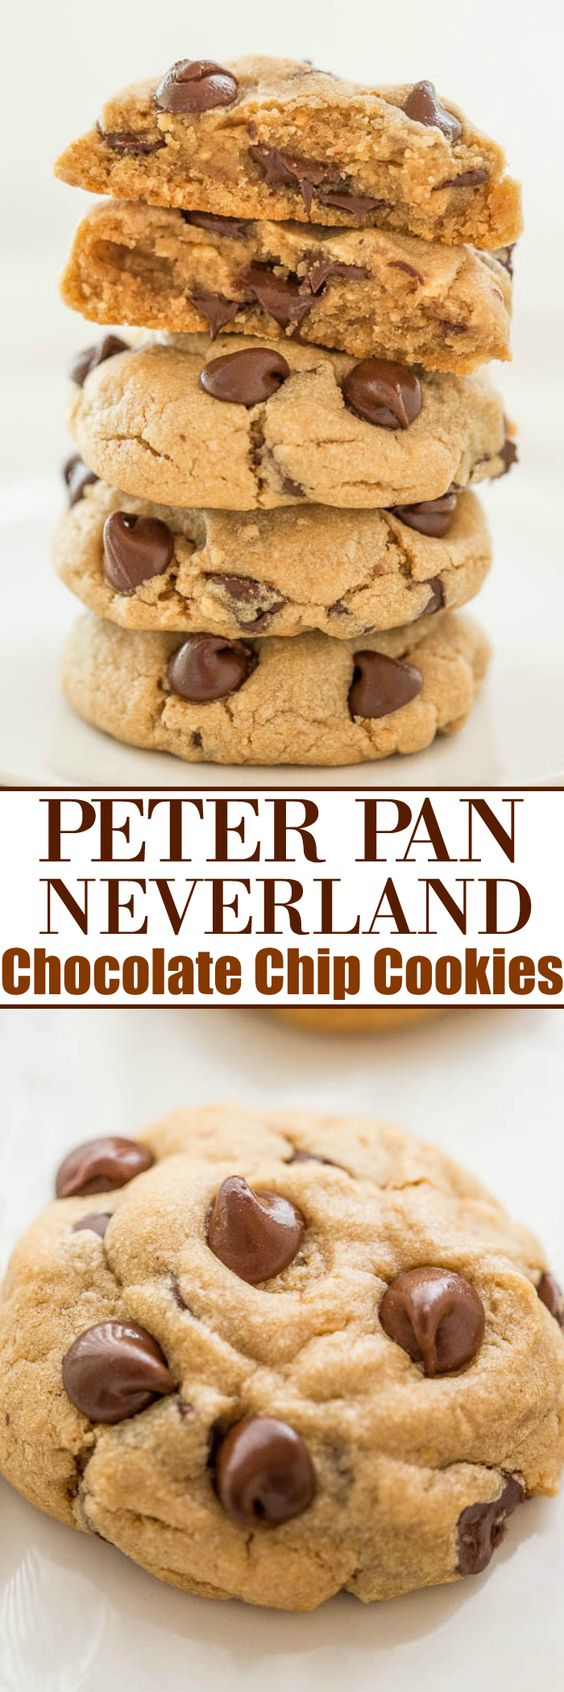 Peter Pan Neverland Chocolate Chip Cookies - Soft and chewy peanut butter cookies loaded with chocolate chips!! The combination of peanut butter and chocolate is IRRESISTIBLE!!: